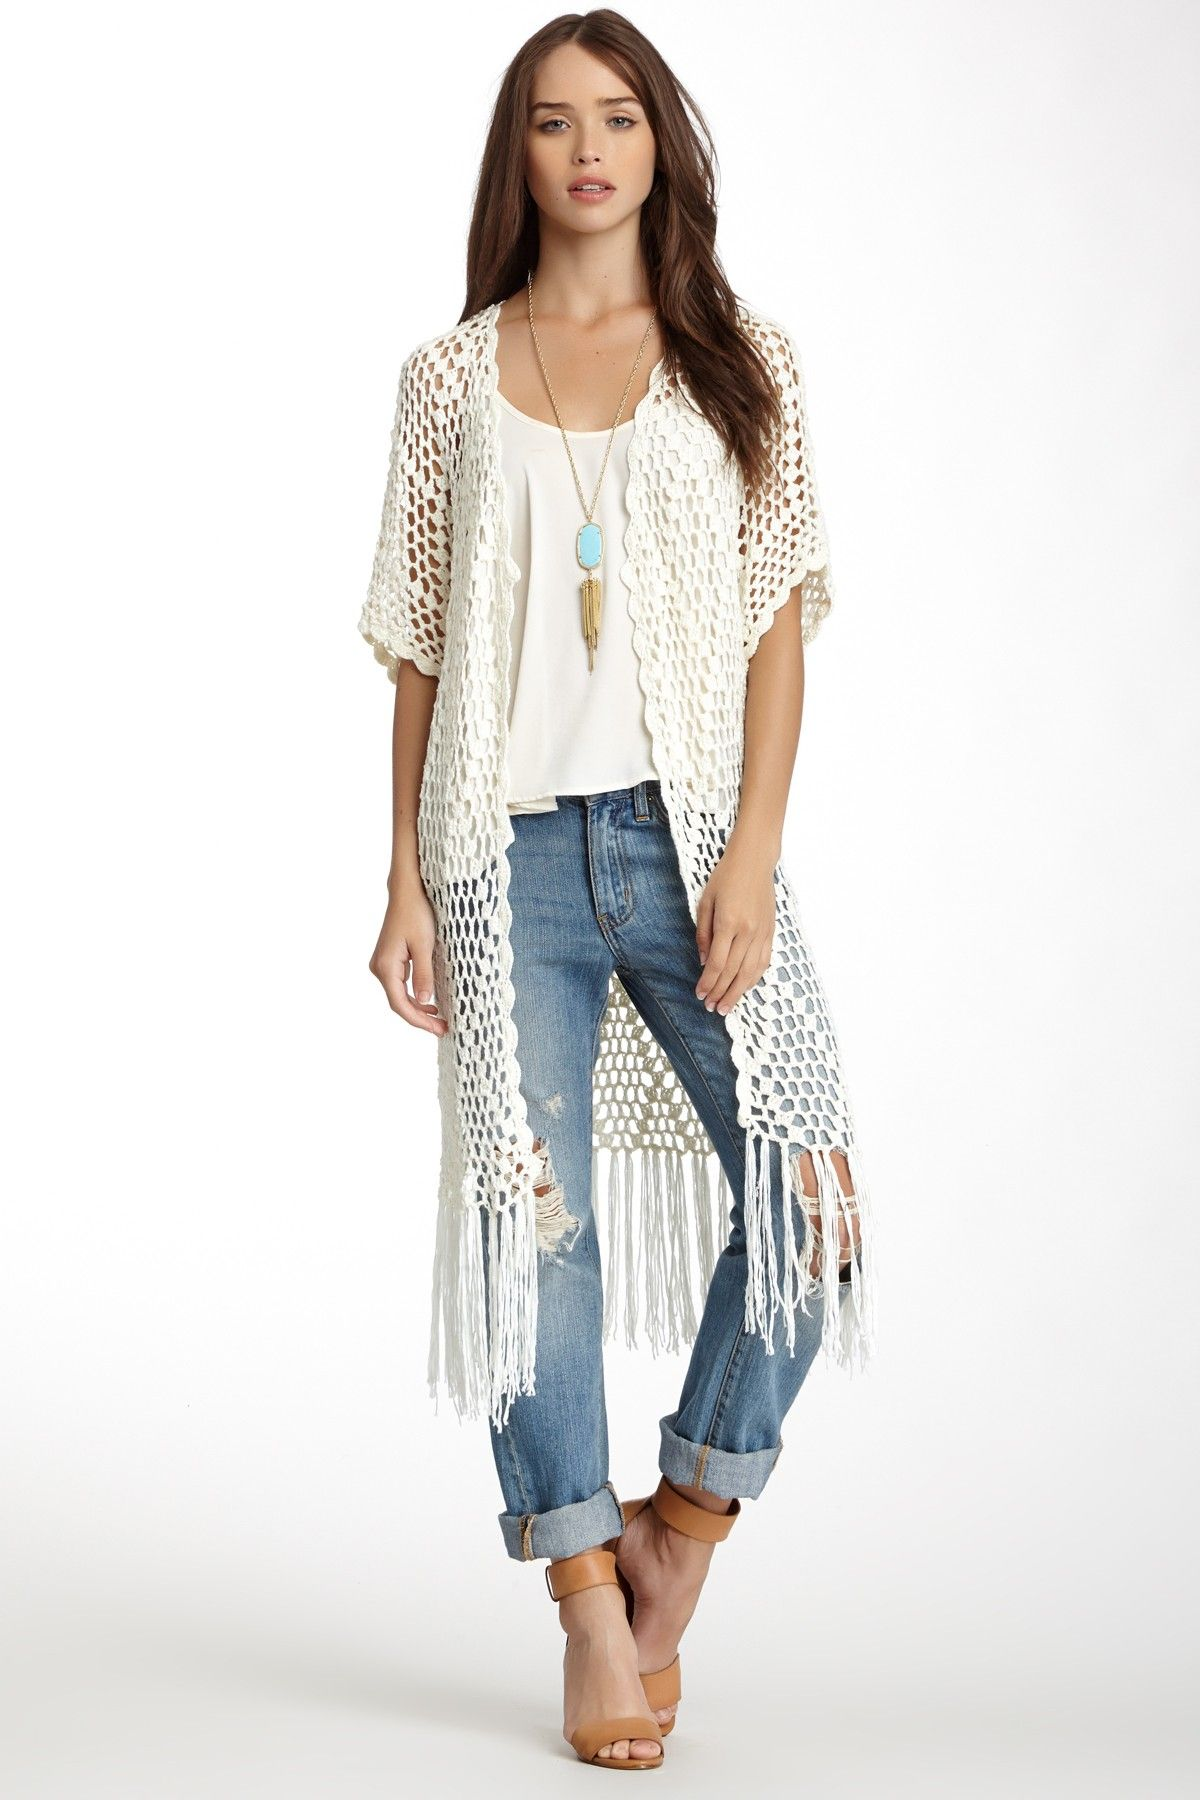 Fun boho chic look. With a hit of turquoise, of course! Groupie ...